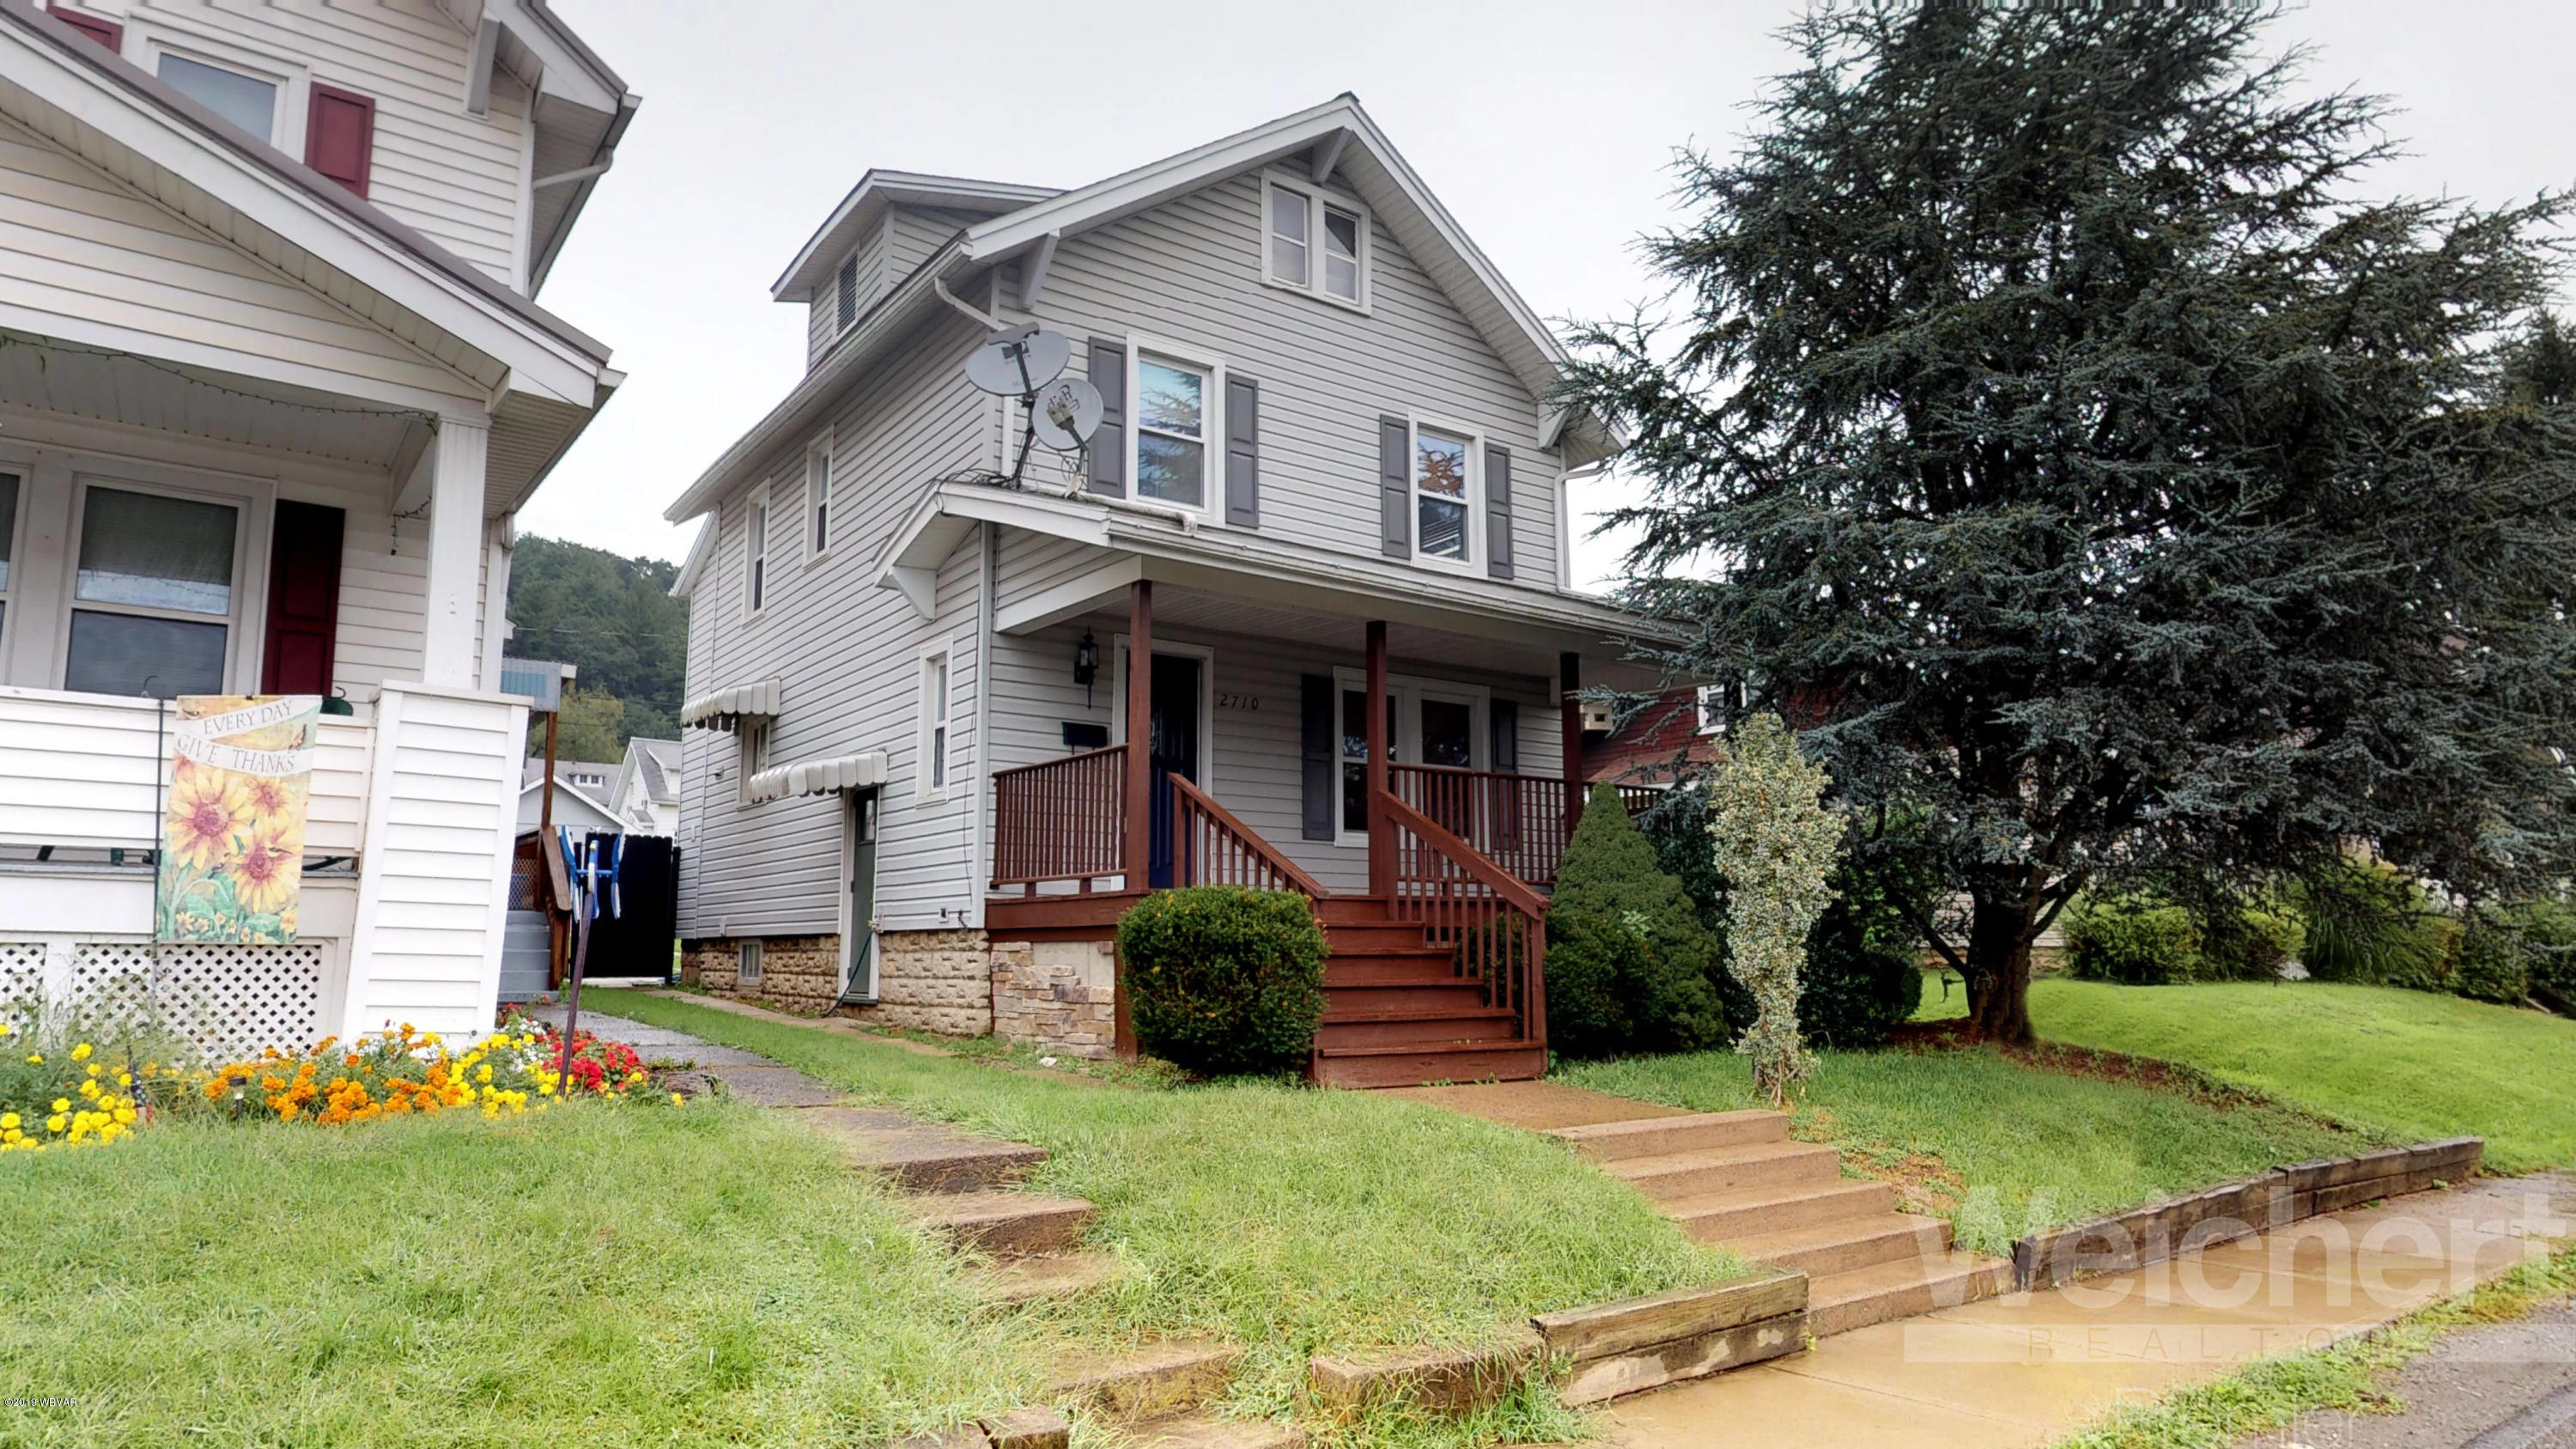 2710 GRAND STREET,Williamsport,PA 17701,3 Bedrooms Bedrooms,2 BathroomsBathrooms,Residential,GRAND,WB-88540